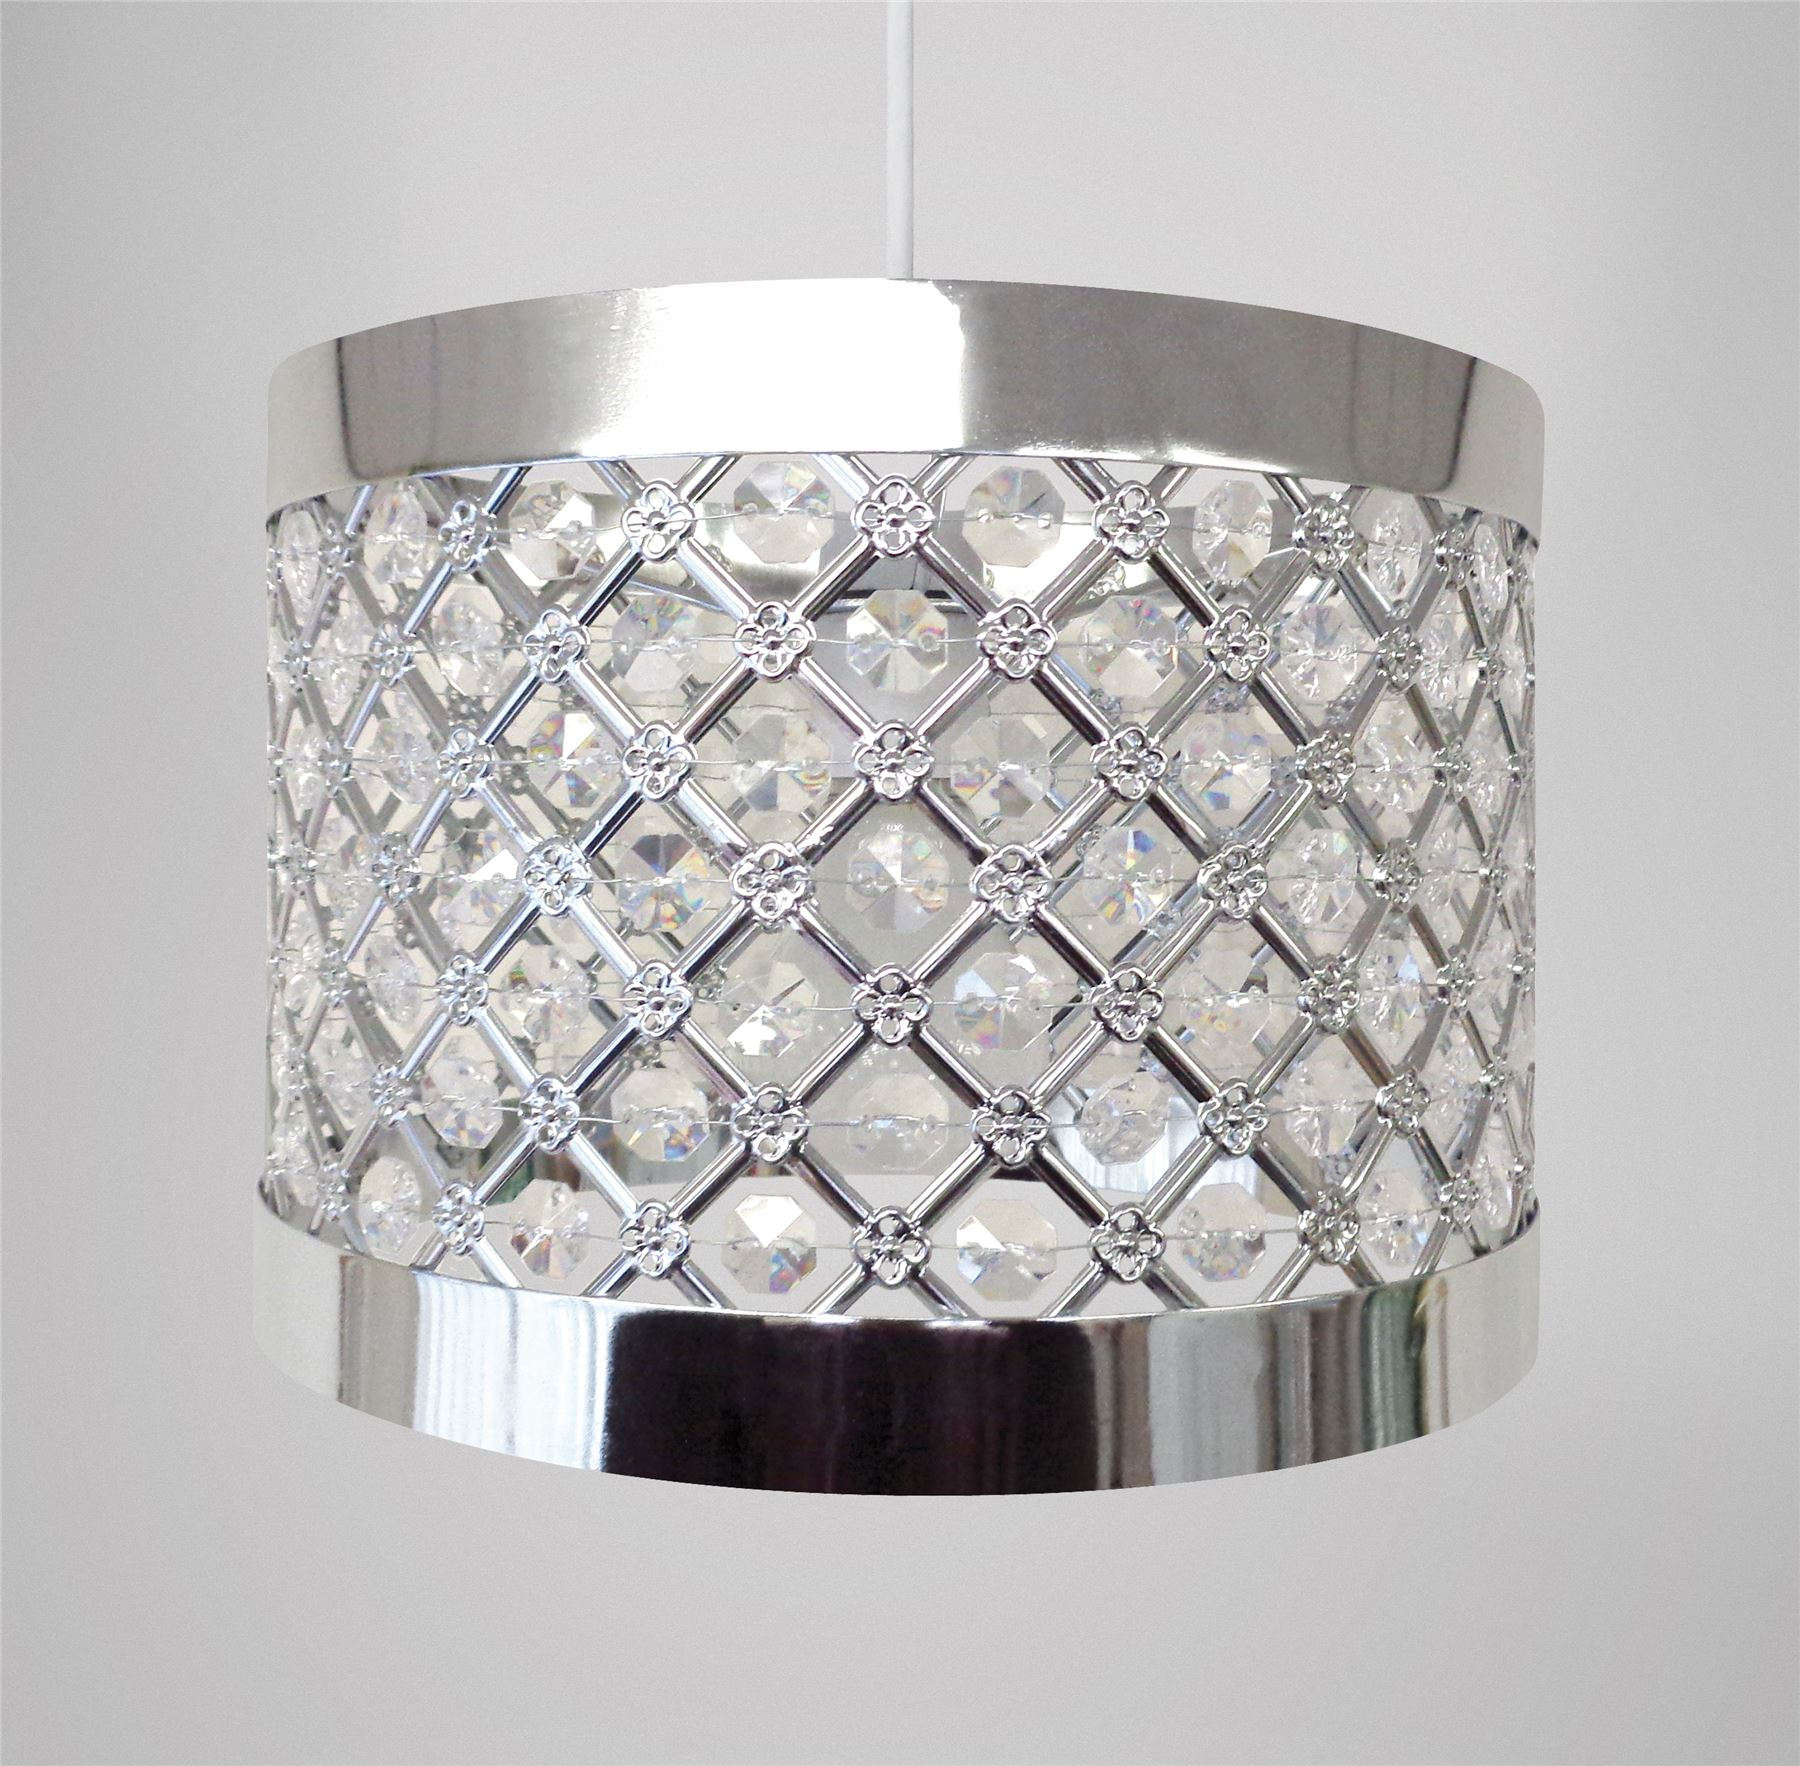 Easy Fit Moda Ceiling Pendant Light Shade, Modern Decoration Sparkly ...